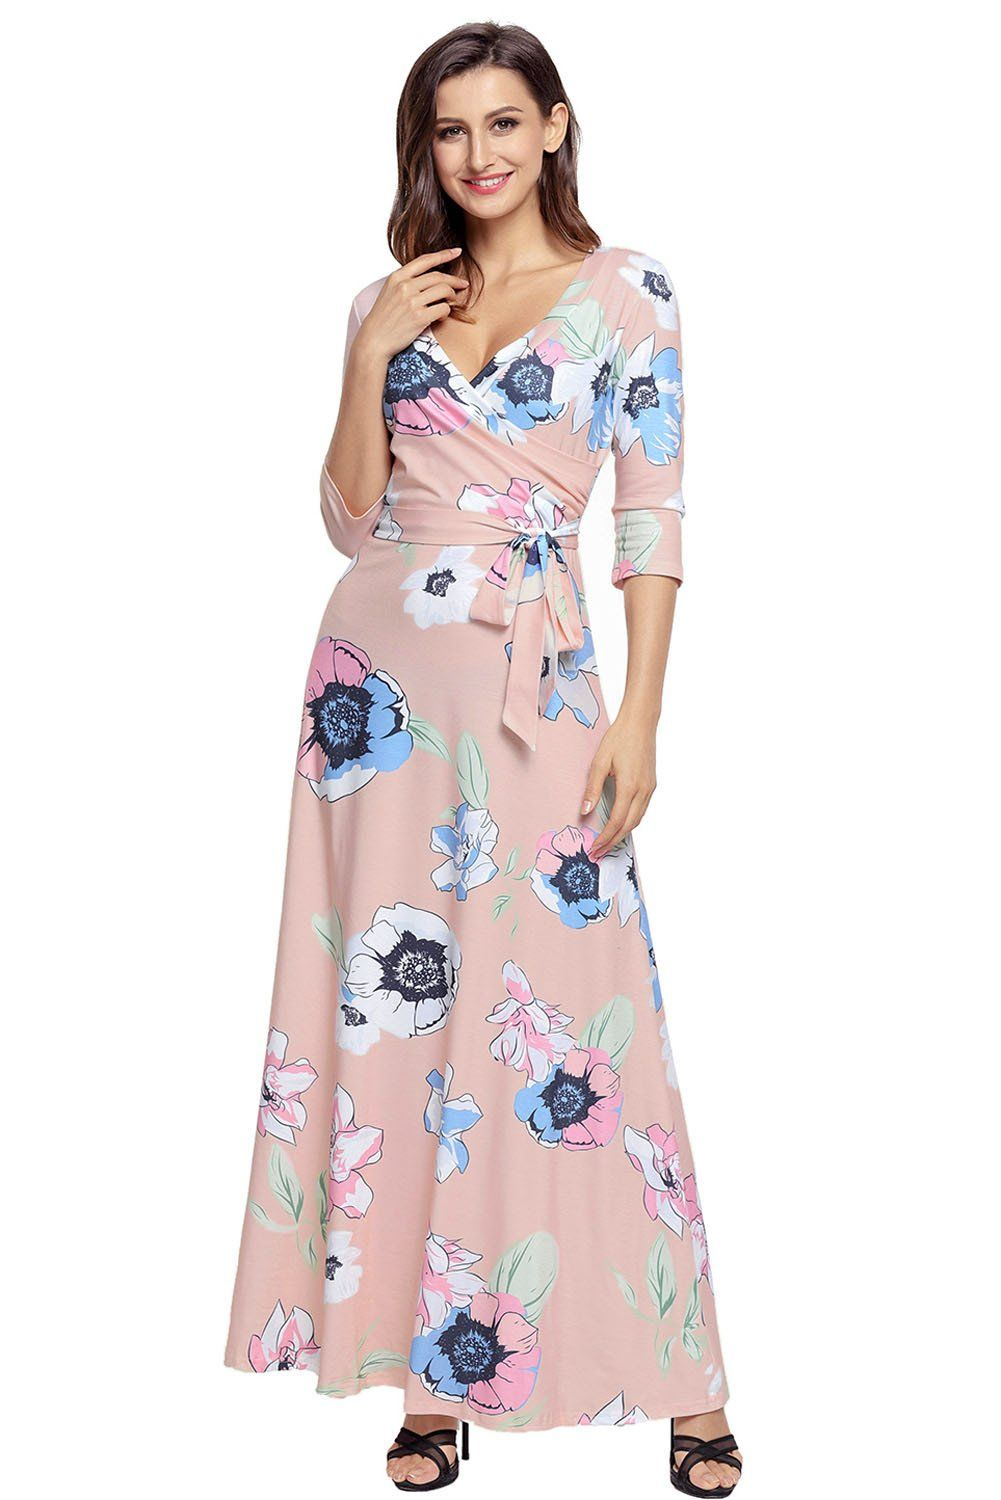 63f21f92dd The Floral Print Wrapped Long Boho Dress is beauty in motion. An amazing  stunning dress that is perfect anytime day or night!